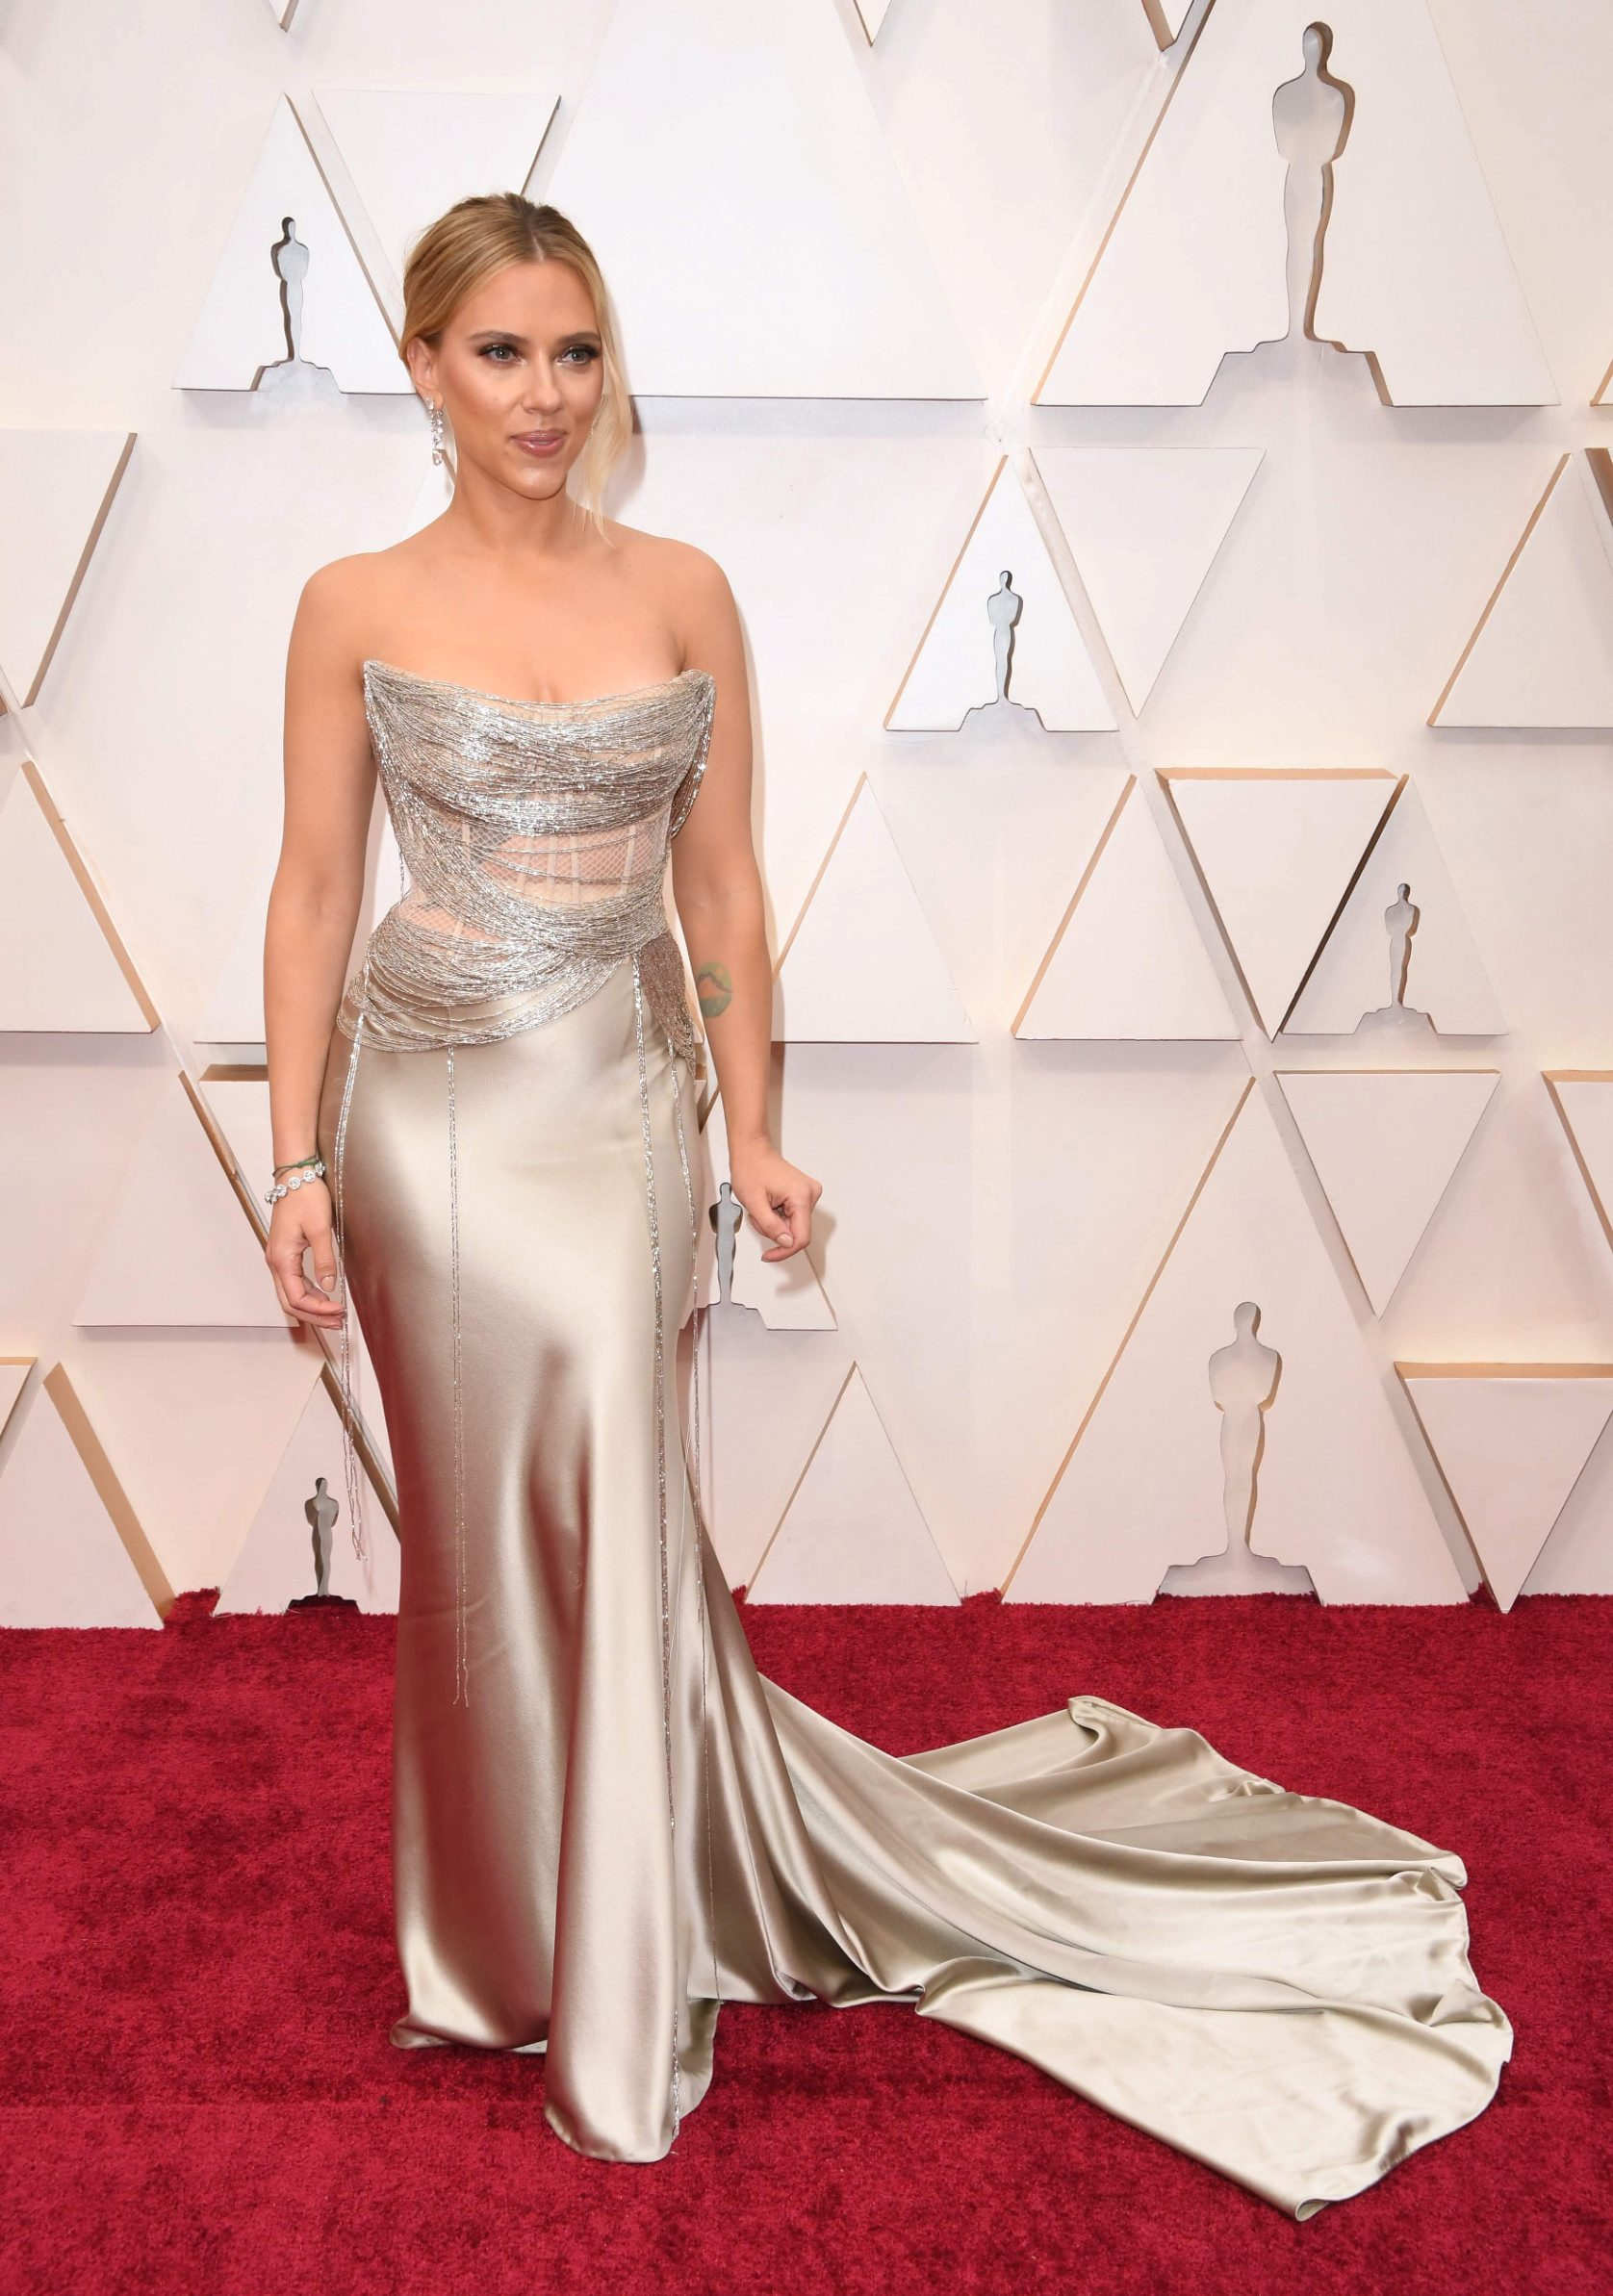 US actress Scarlett Johansson arrives for the 92nd Oscars at the Dolby Theatre in Hollywood, California on February 9, 2020. (Photo by Robyn Beck / AFP)